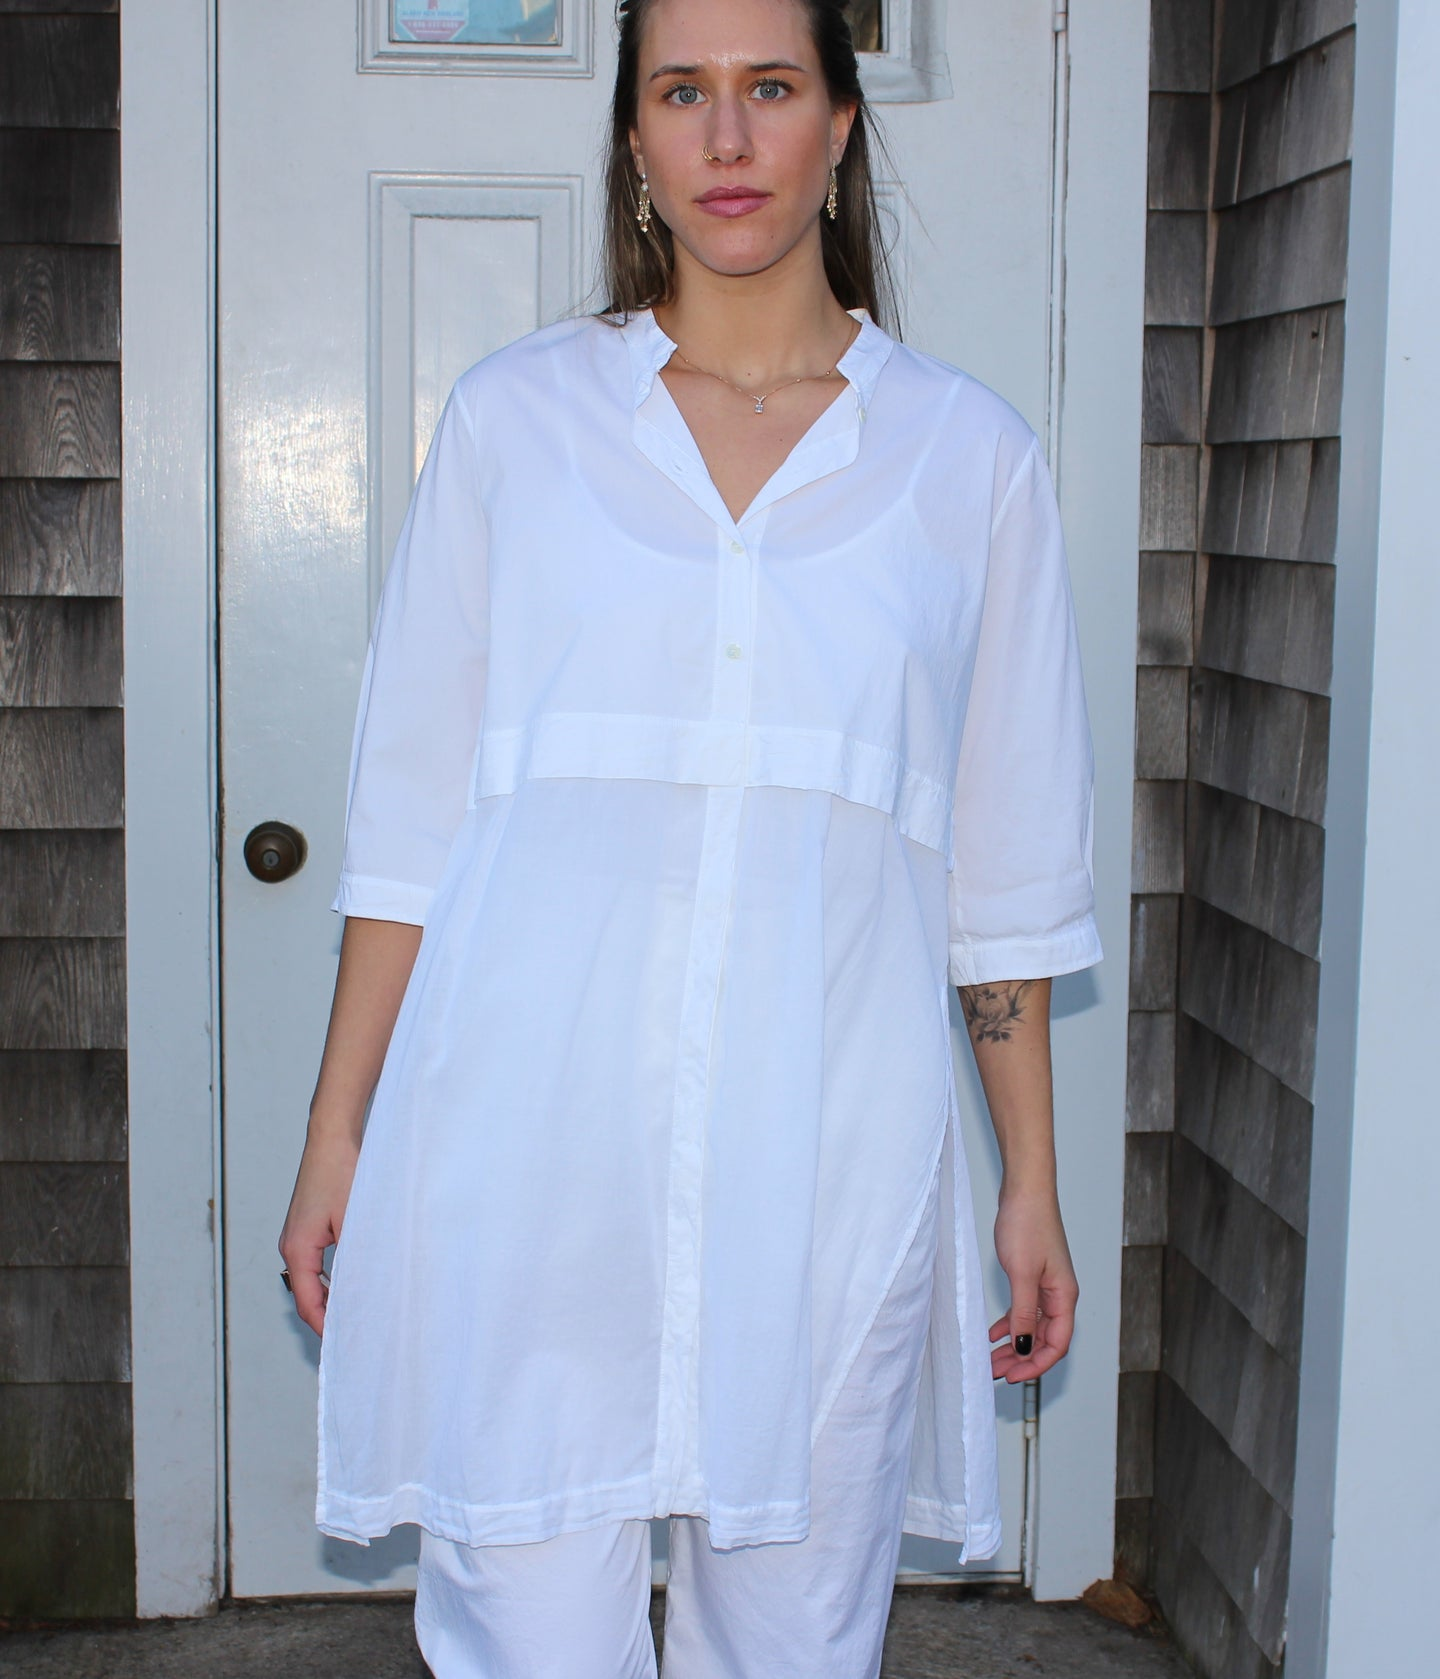 White oversized button-up top 84% Cotton  14% Nylon  2% Elastane  Made in Italy